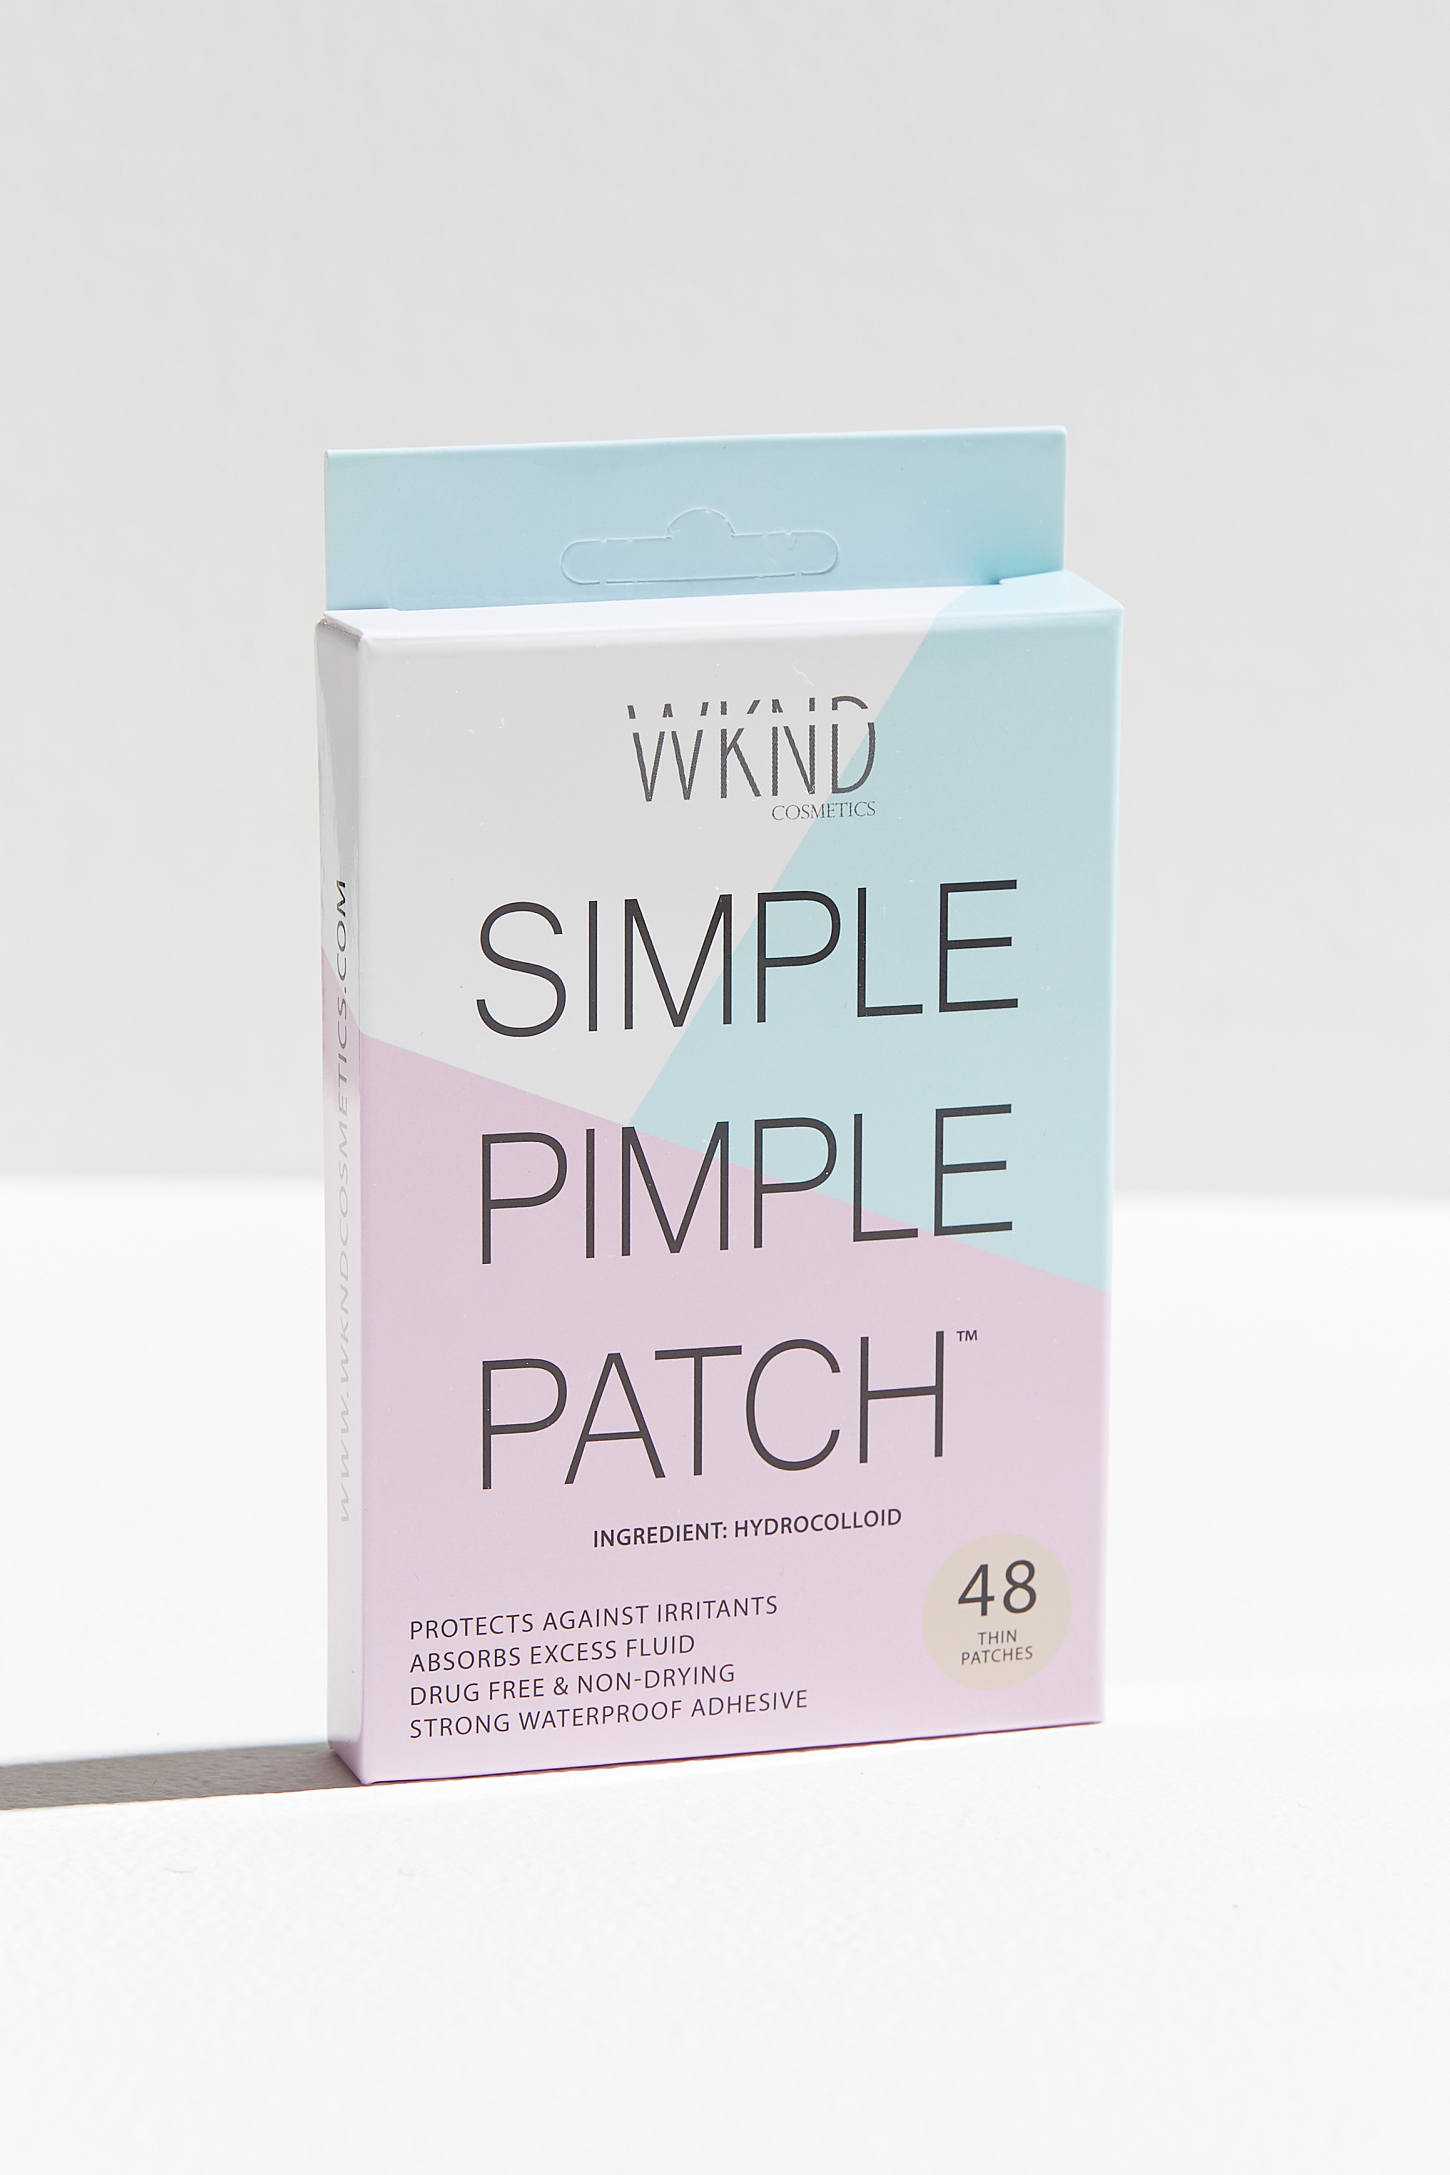 WKND Cosmetics Simple Pimple Patch